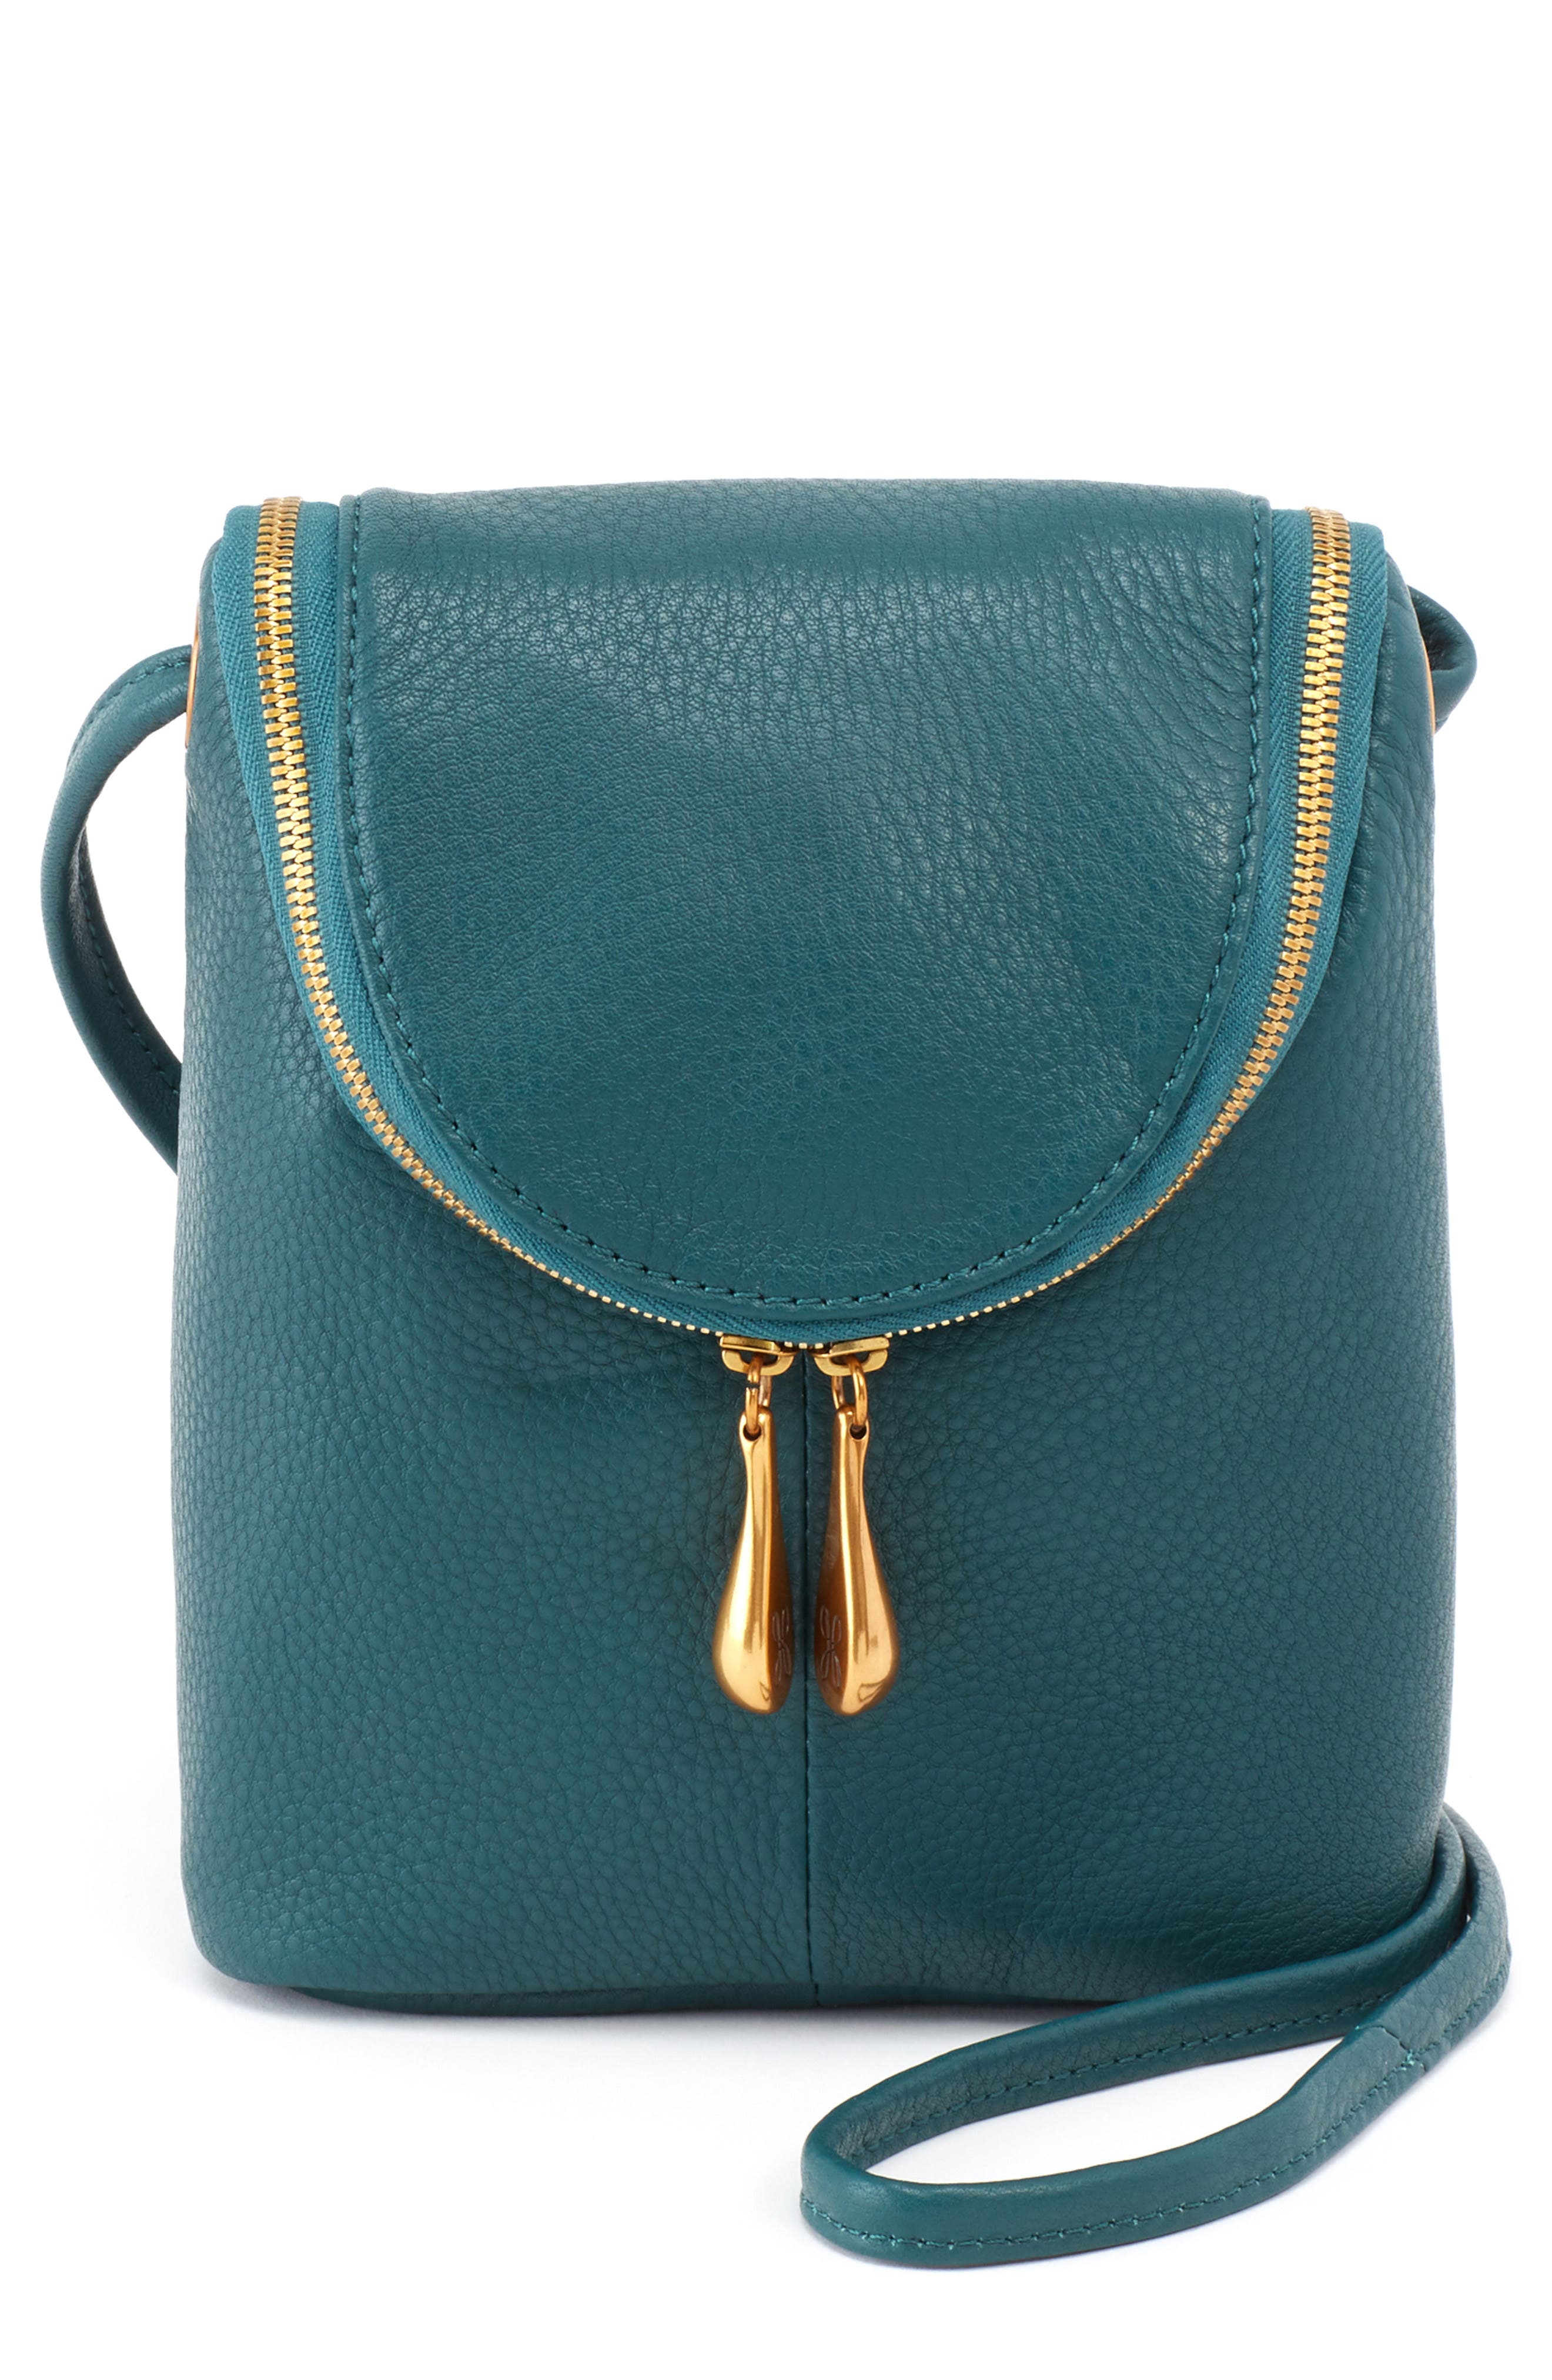 Fern Saddle Bag,                             Main thumbnail 1, color,                             DARK TEAL